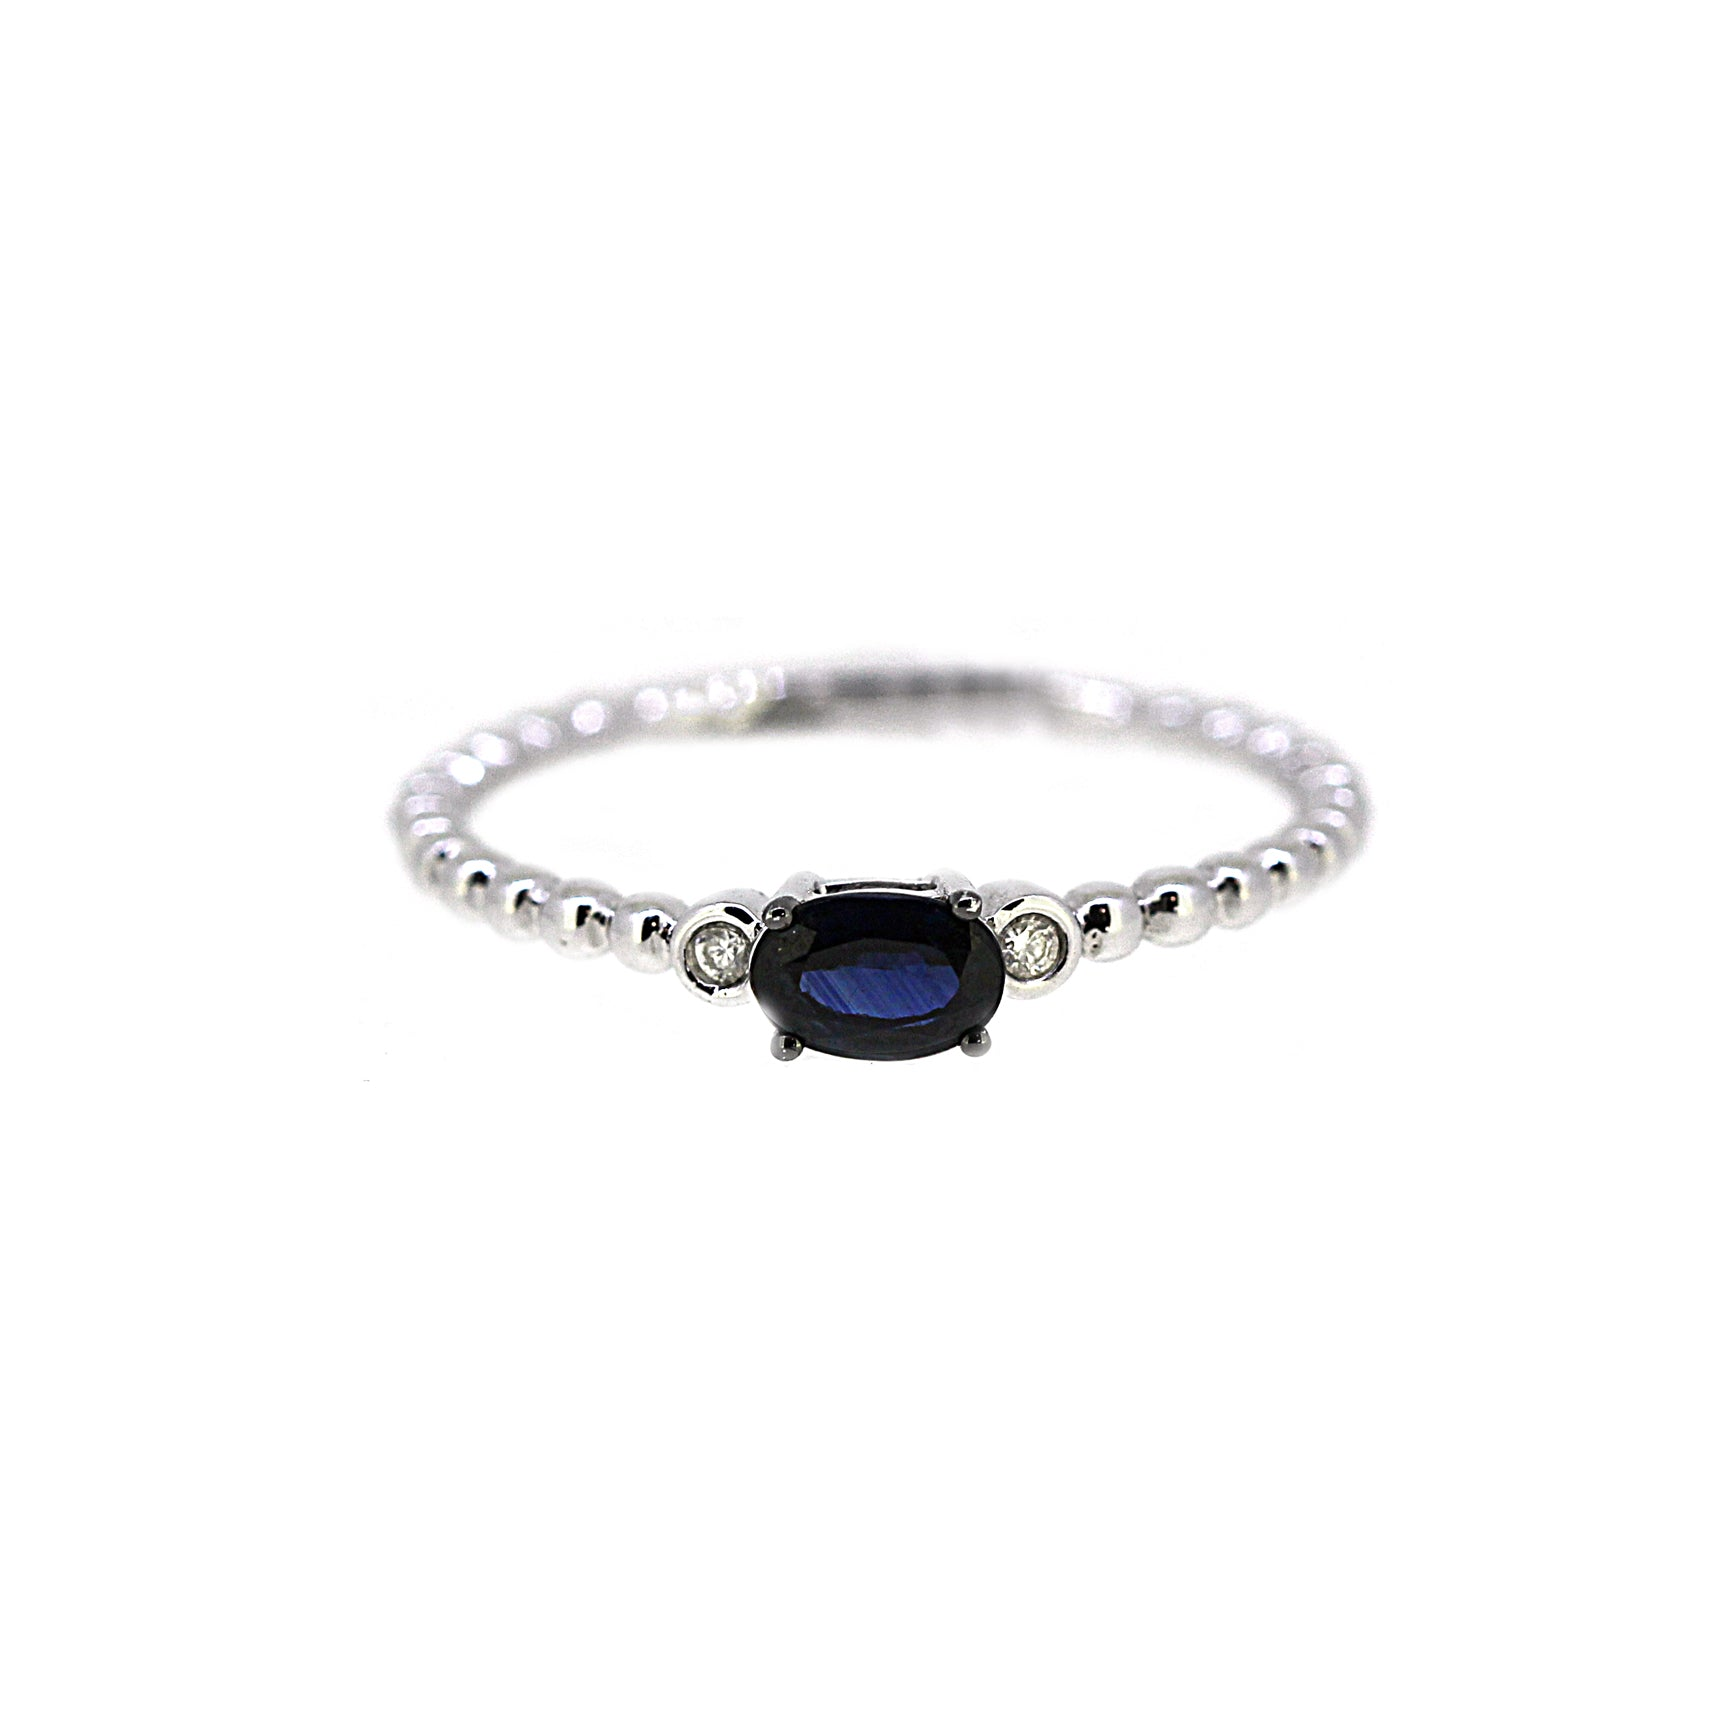 product silver restoring sapphire jewelry com lady ring female saffire fashion rings dhgate bohemia noble from ways jinao ancient sterling